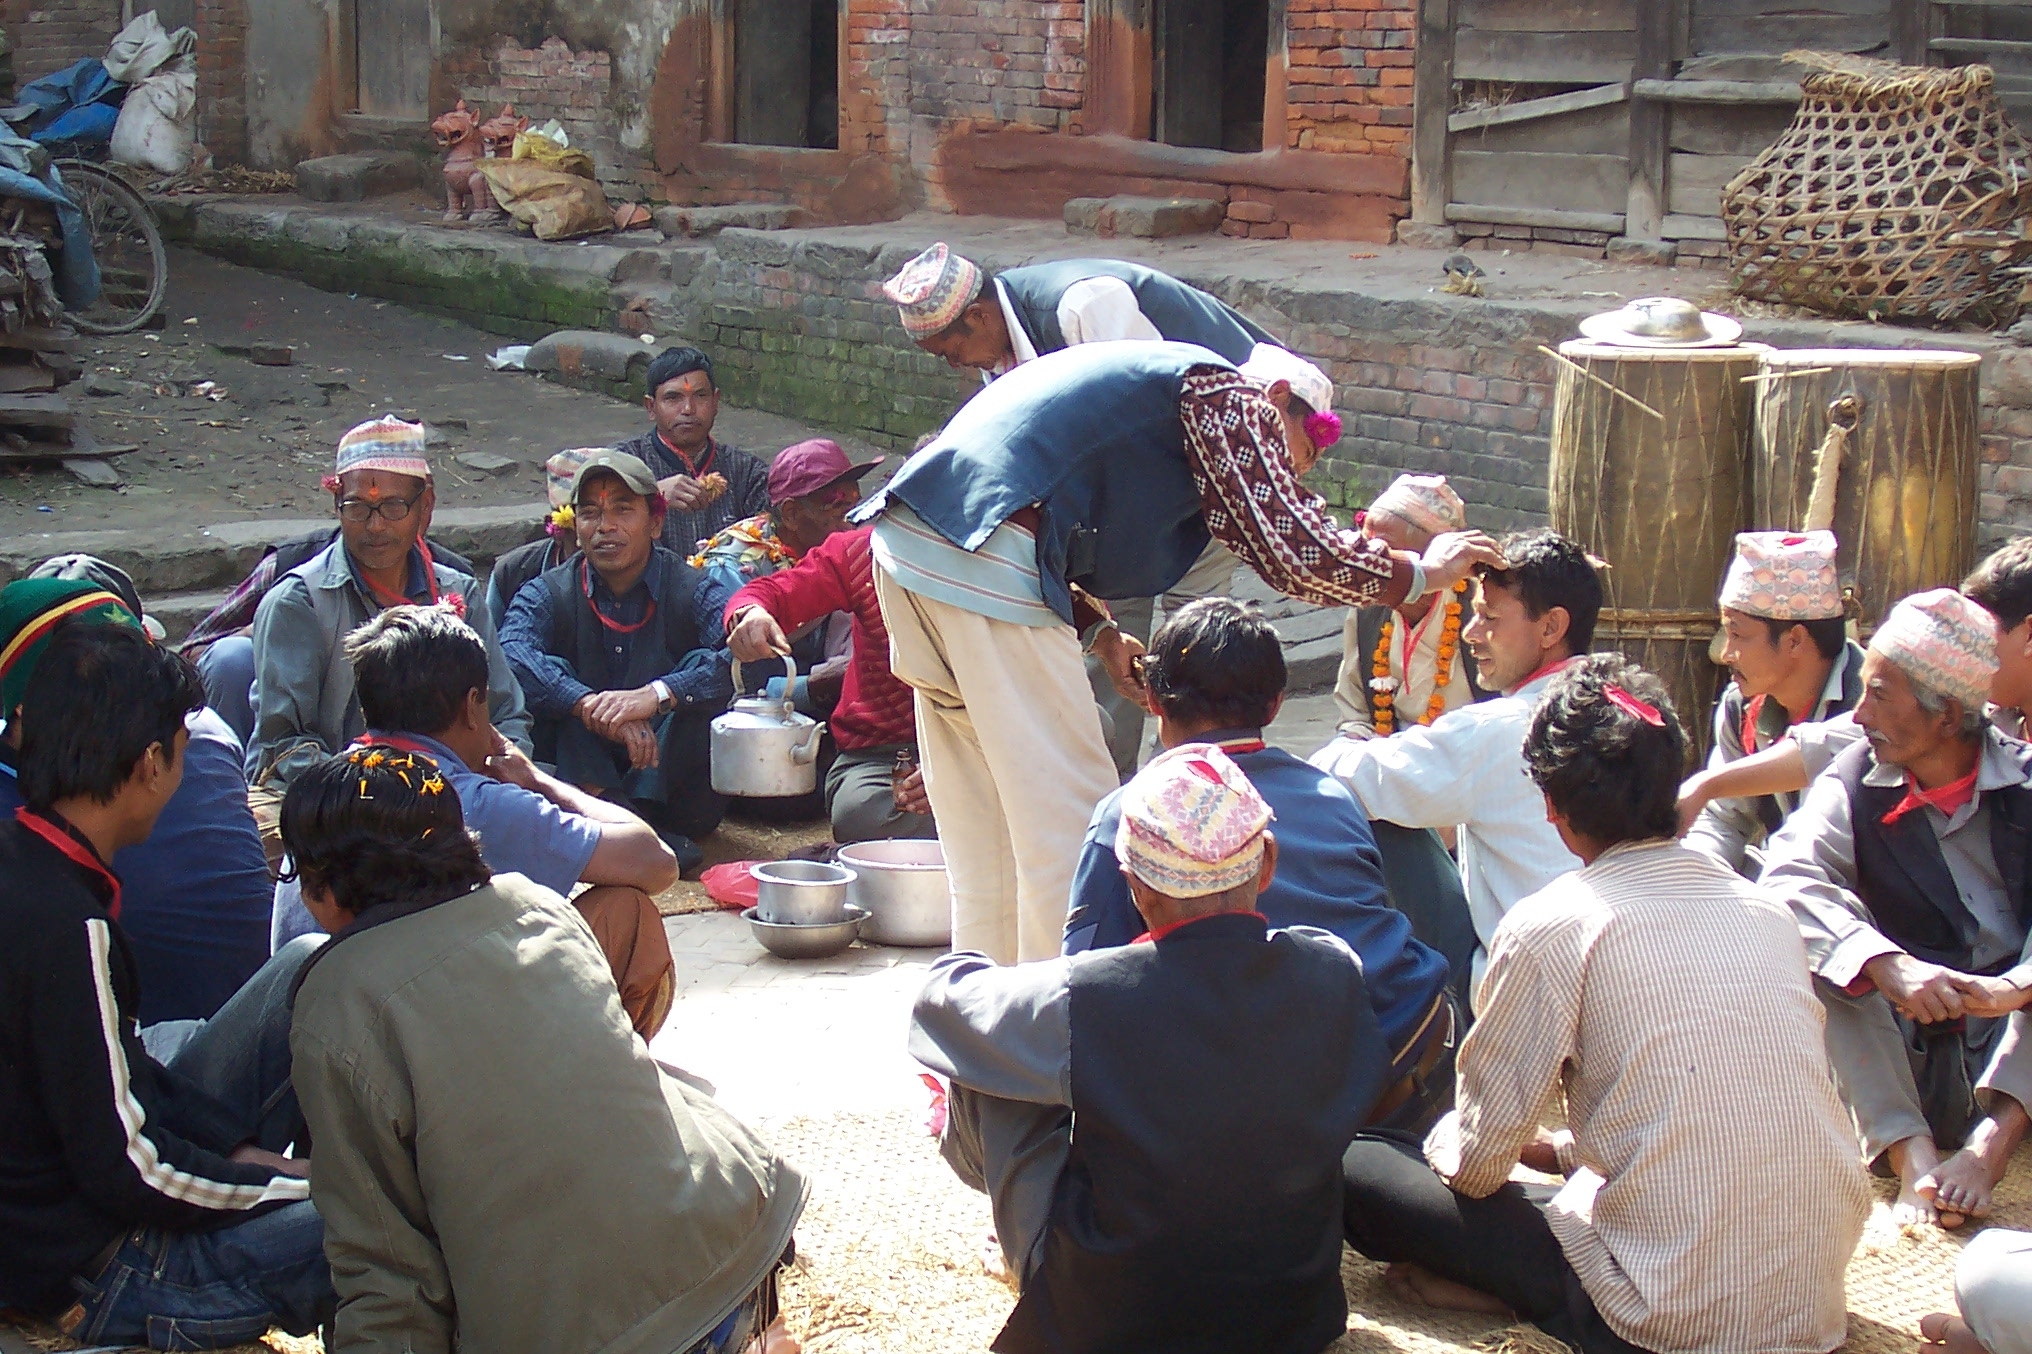 nature characters humanoids annet nepal ceremony crowd people men religion thea